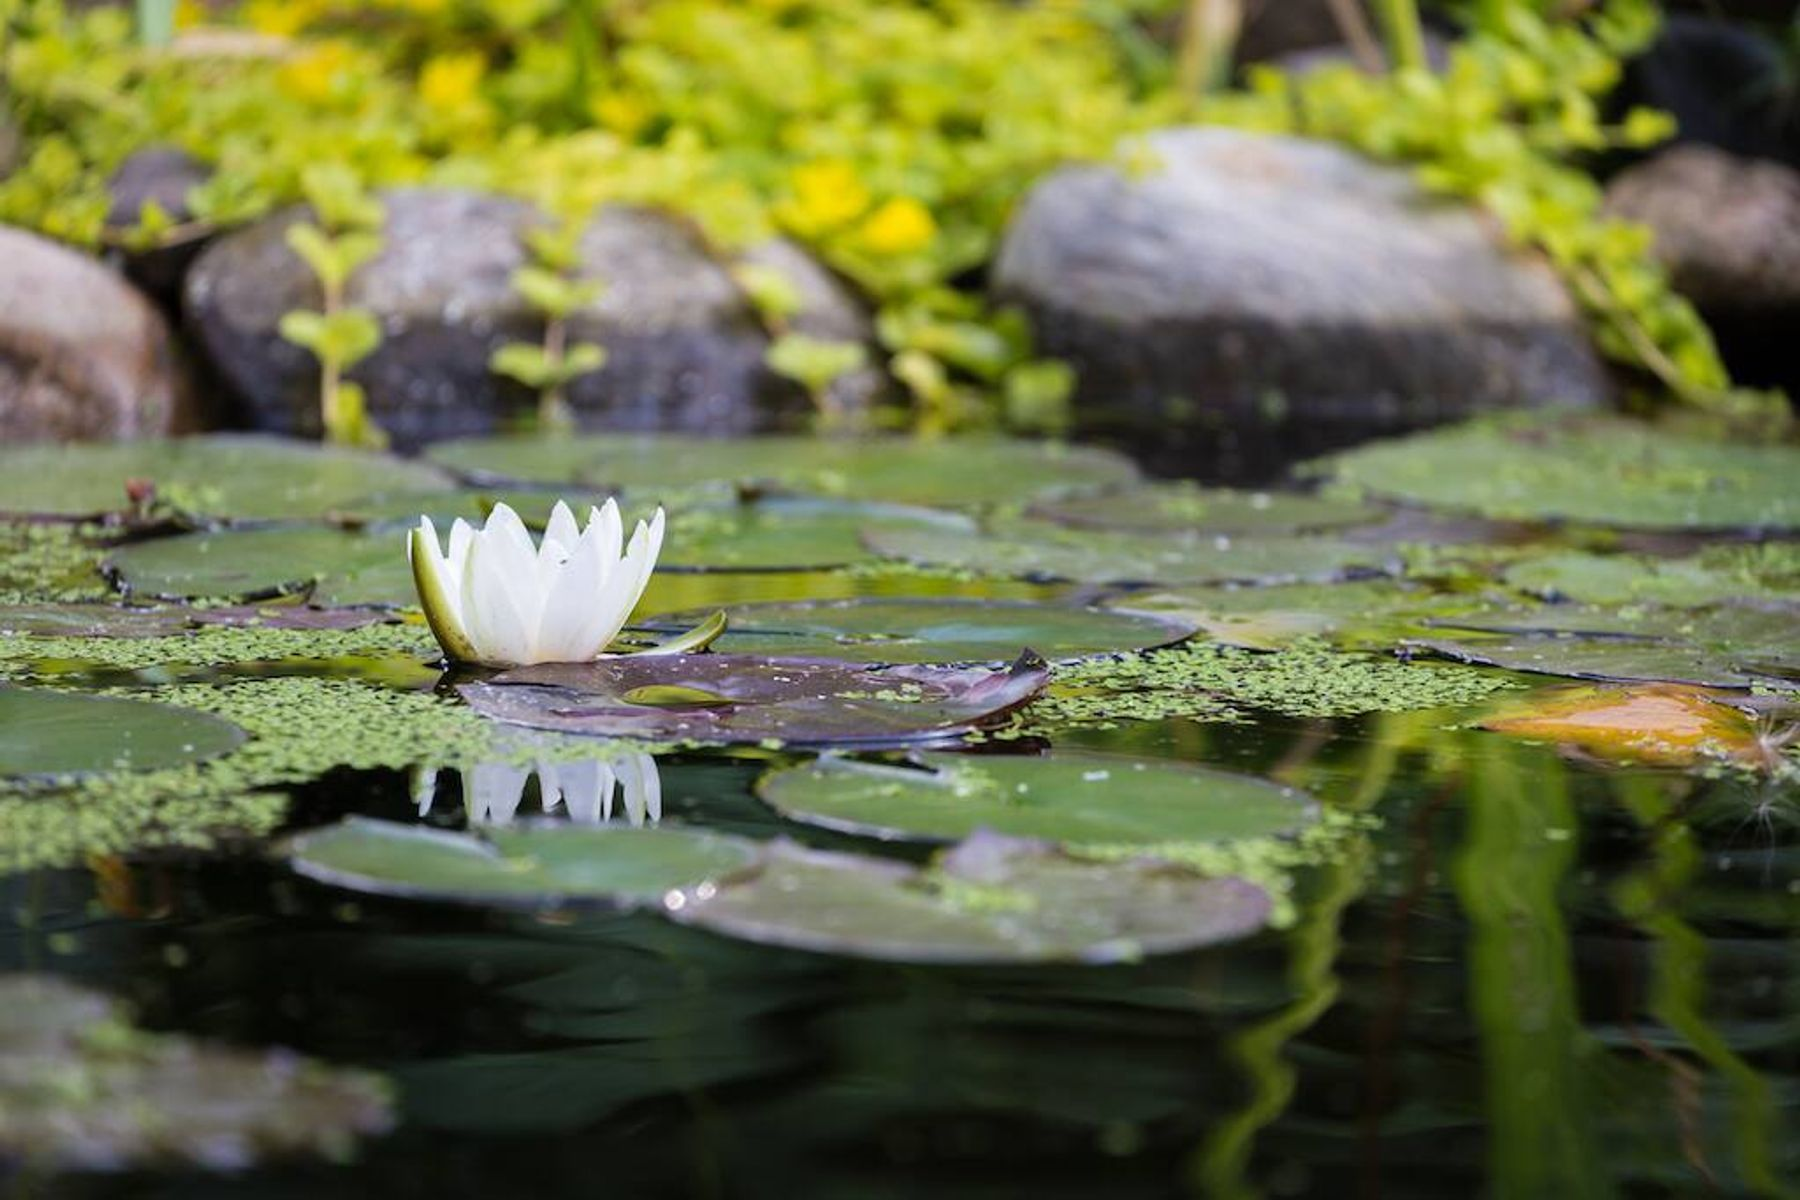 How to build a wildlife pond: The surface of a pond with water lilies floating on top